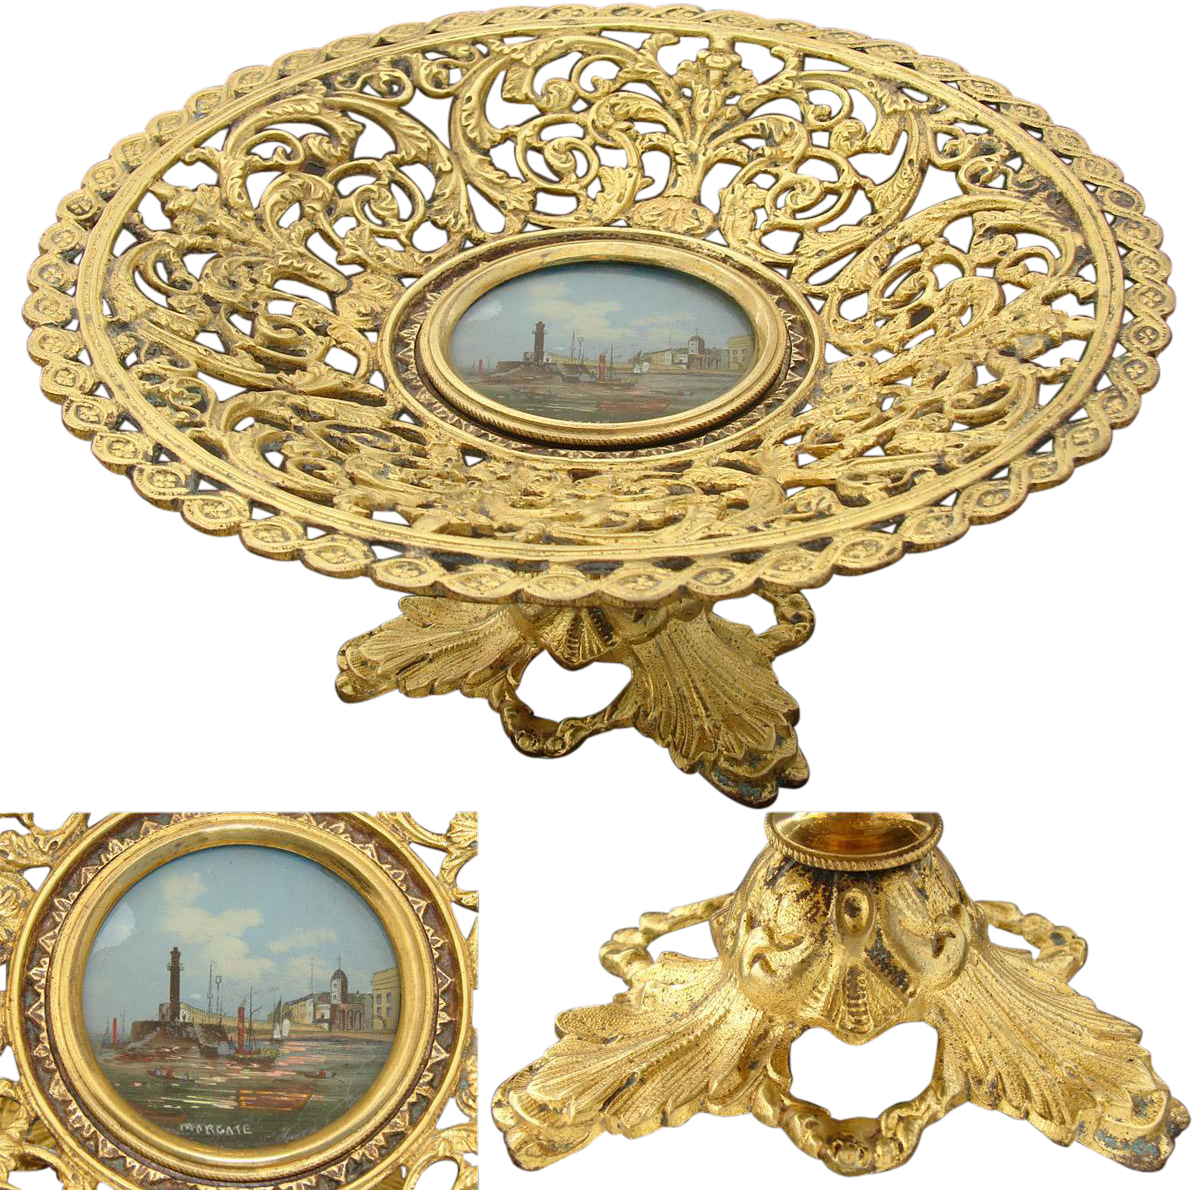 Antique Grand Tour Souvenir Card or Cake Tray: Margate, UK Eglomise Painting